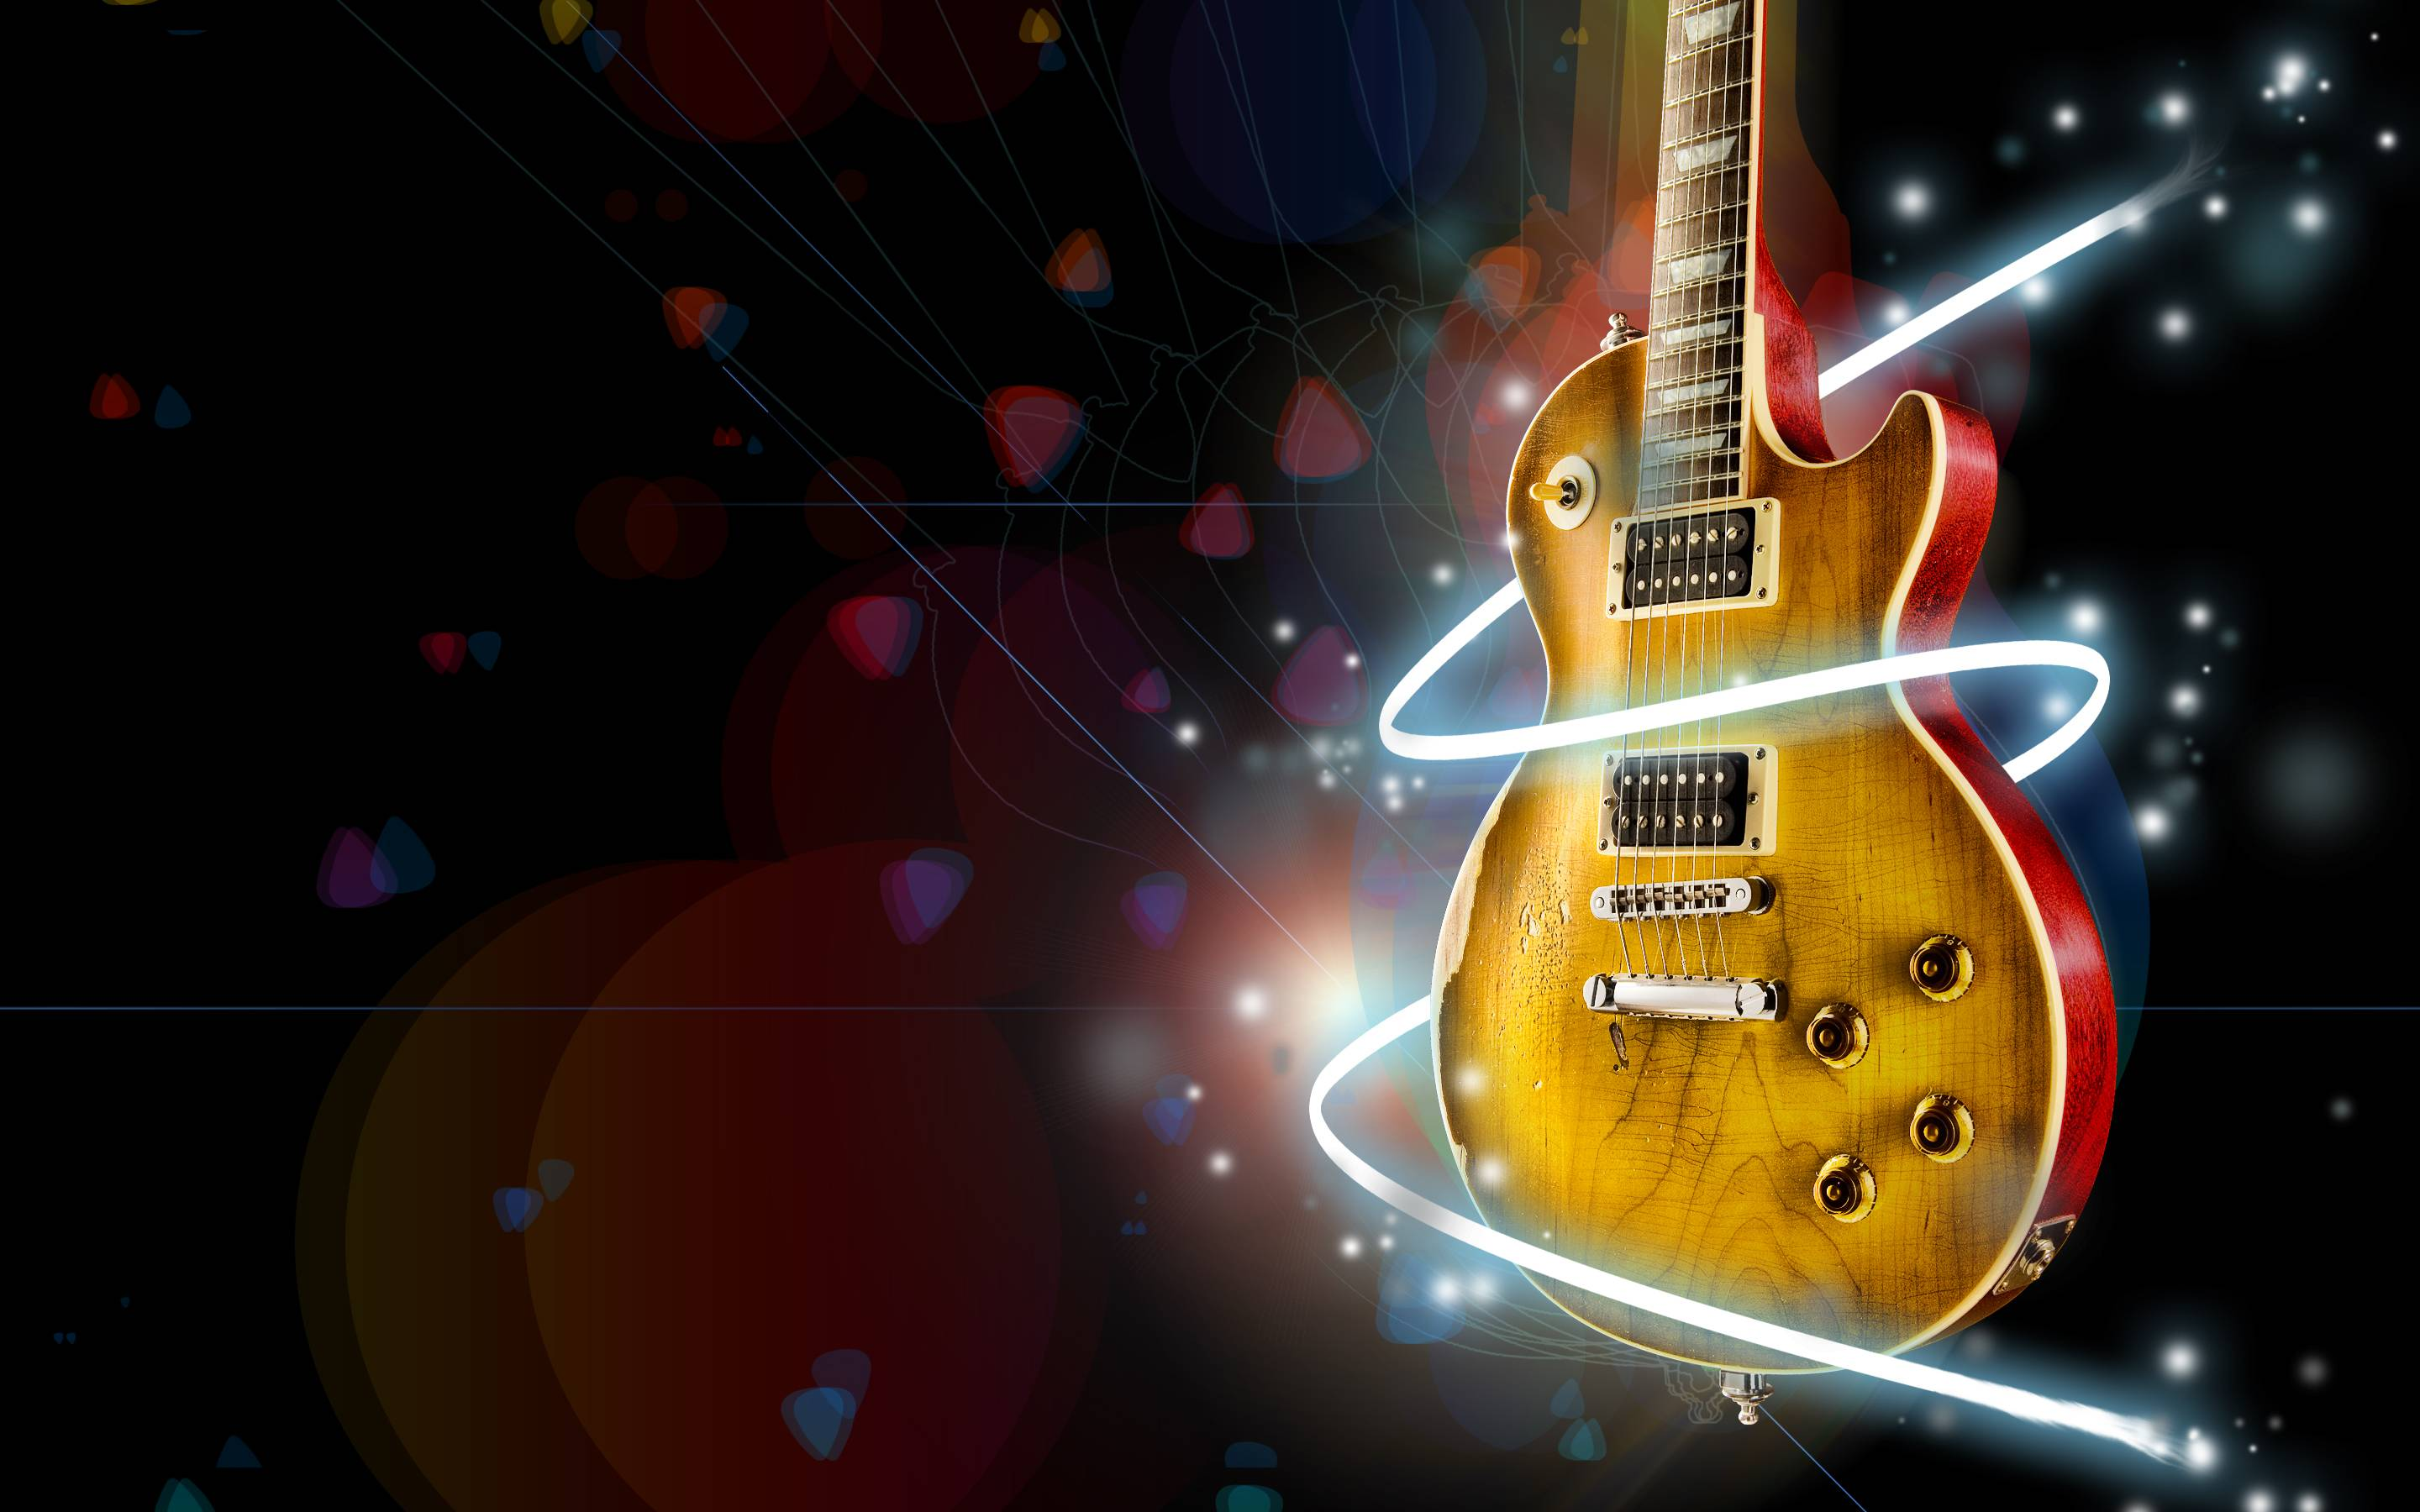 Love Wallpaper With Guitar : Guitar Wallpapers HD - Wallpaper cave